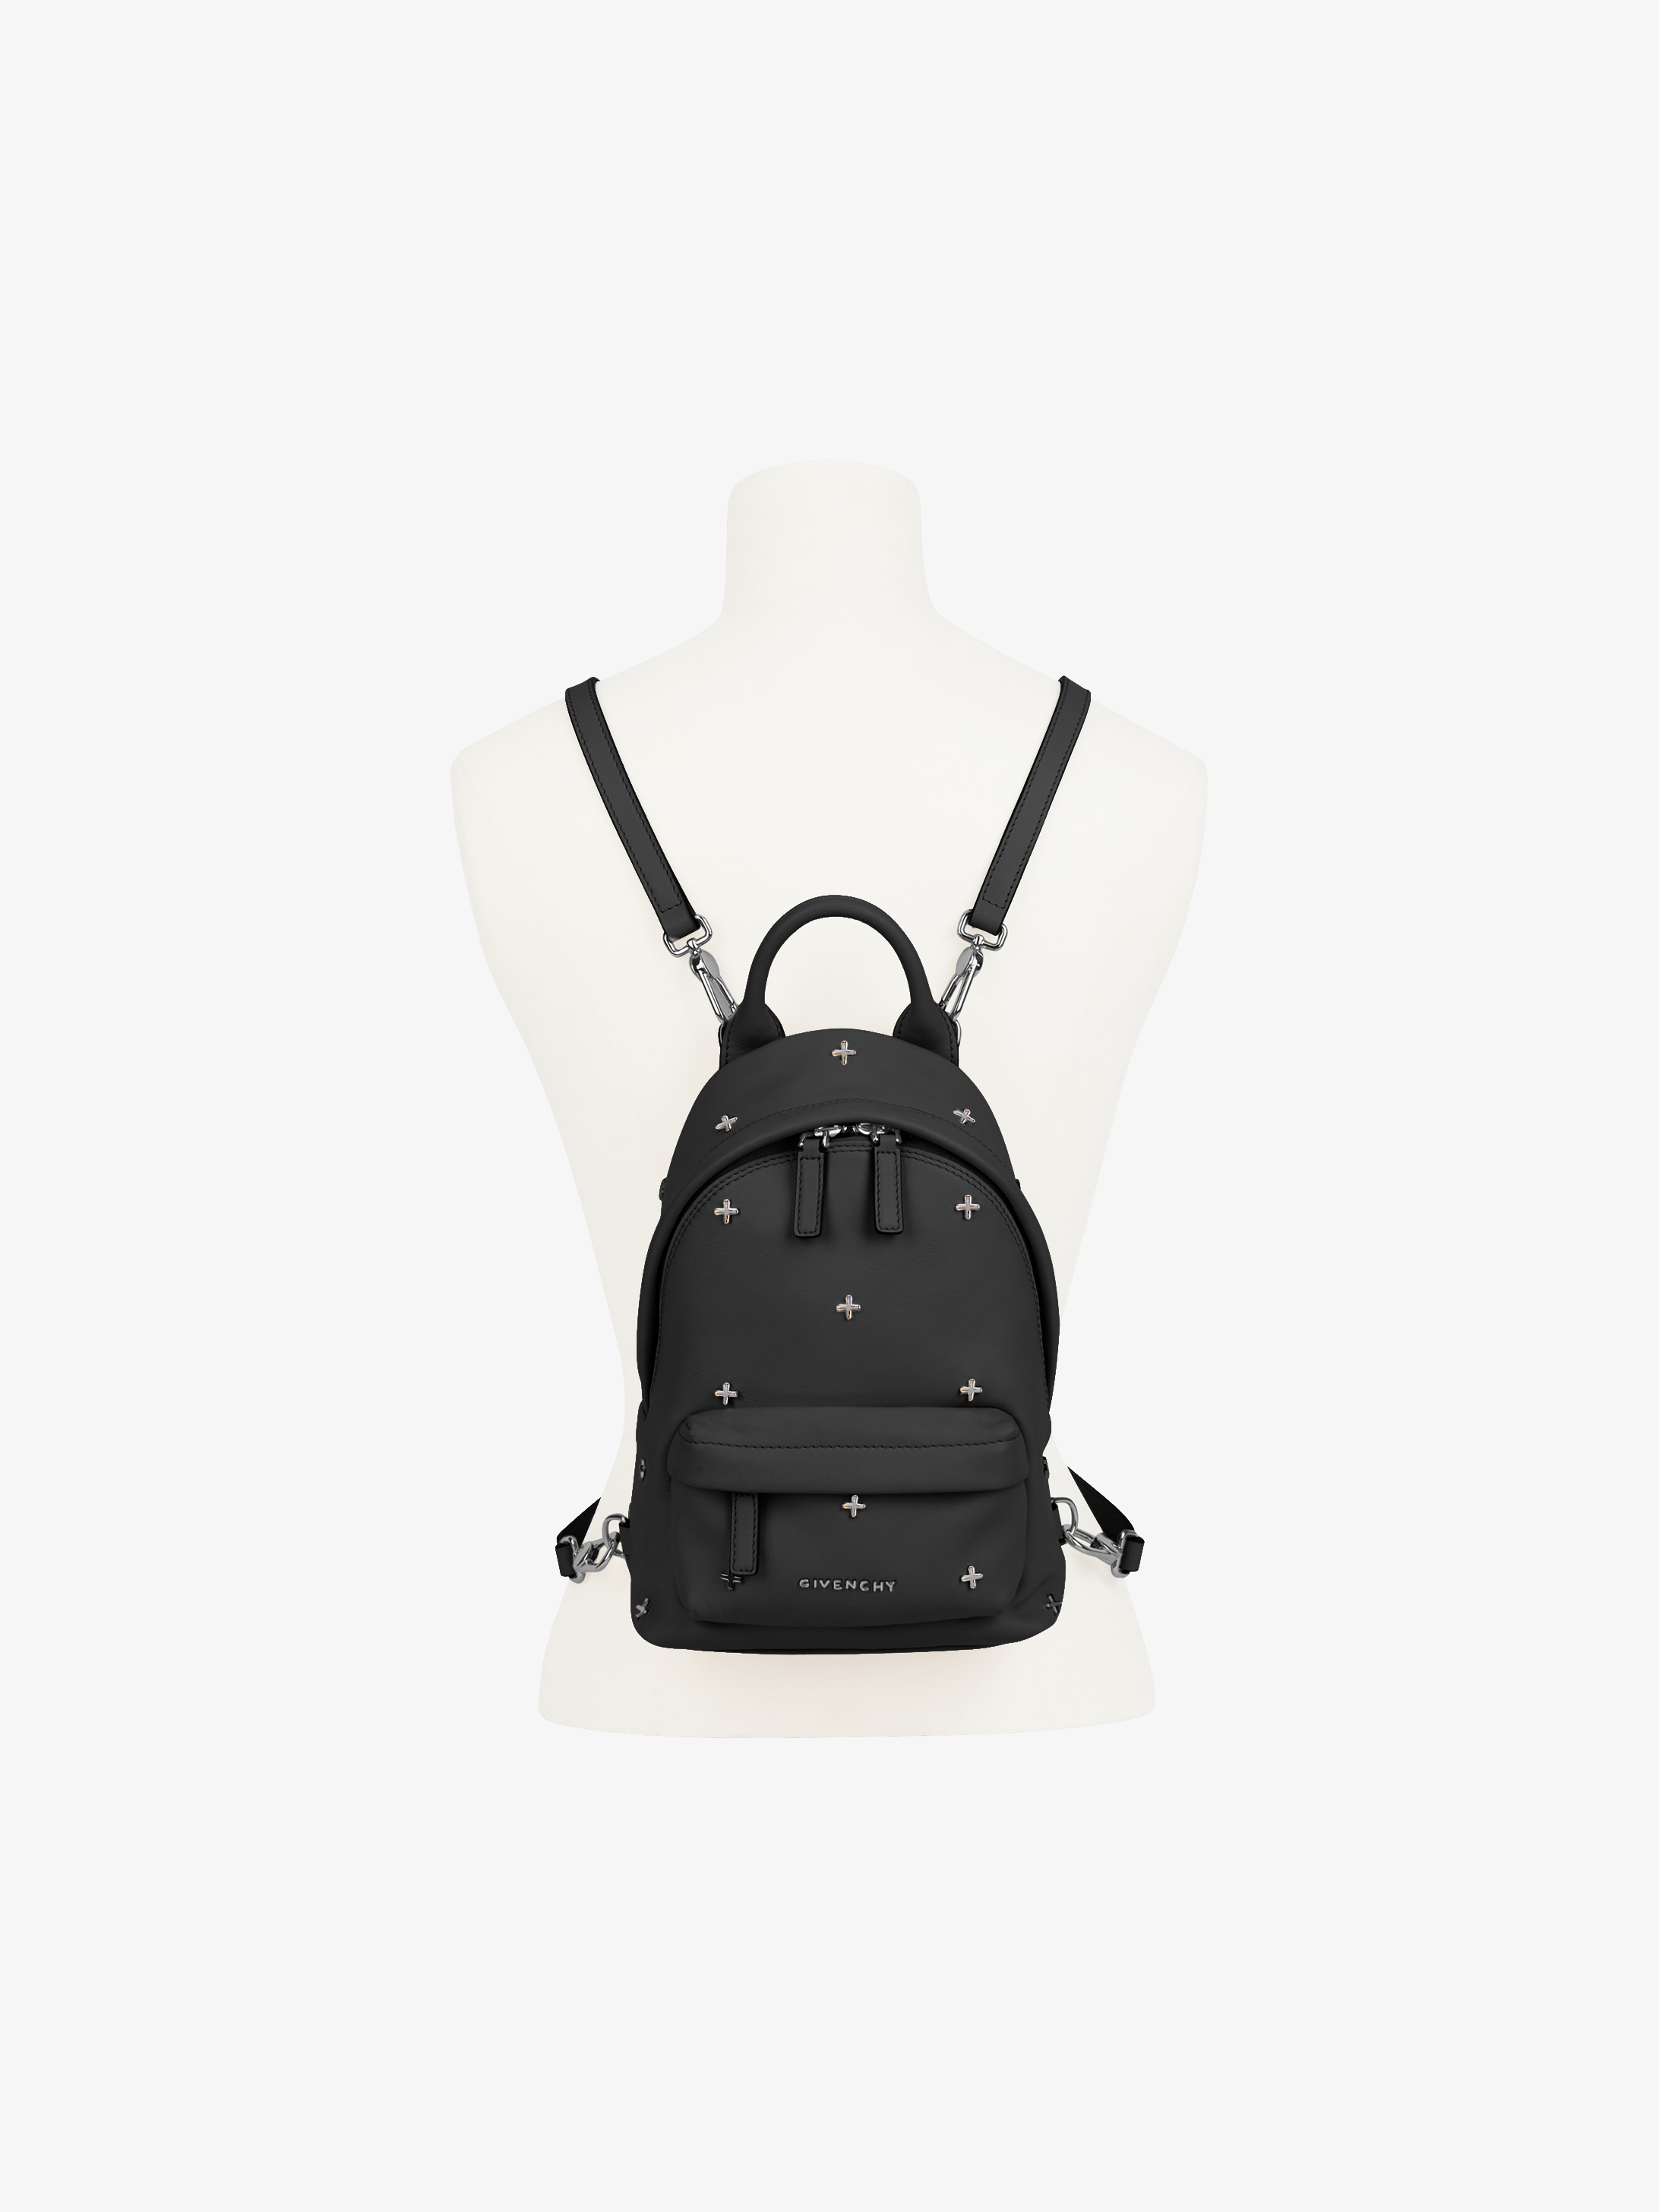 Metal crosses embroidered nano leather backpack